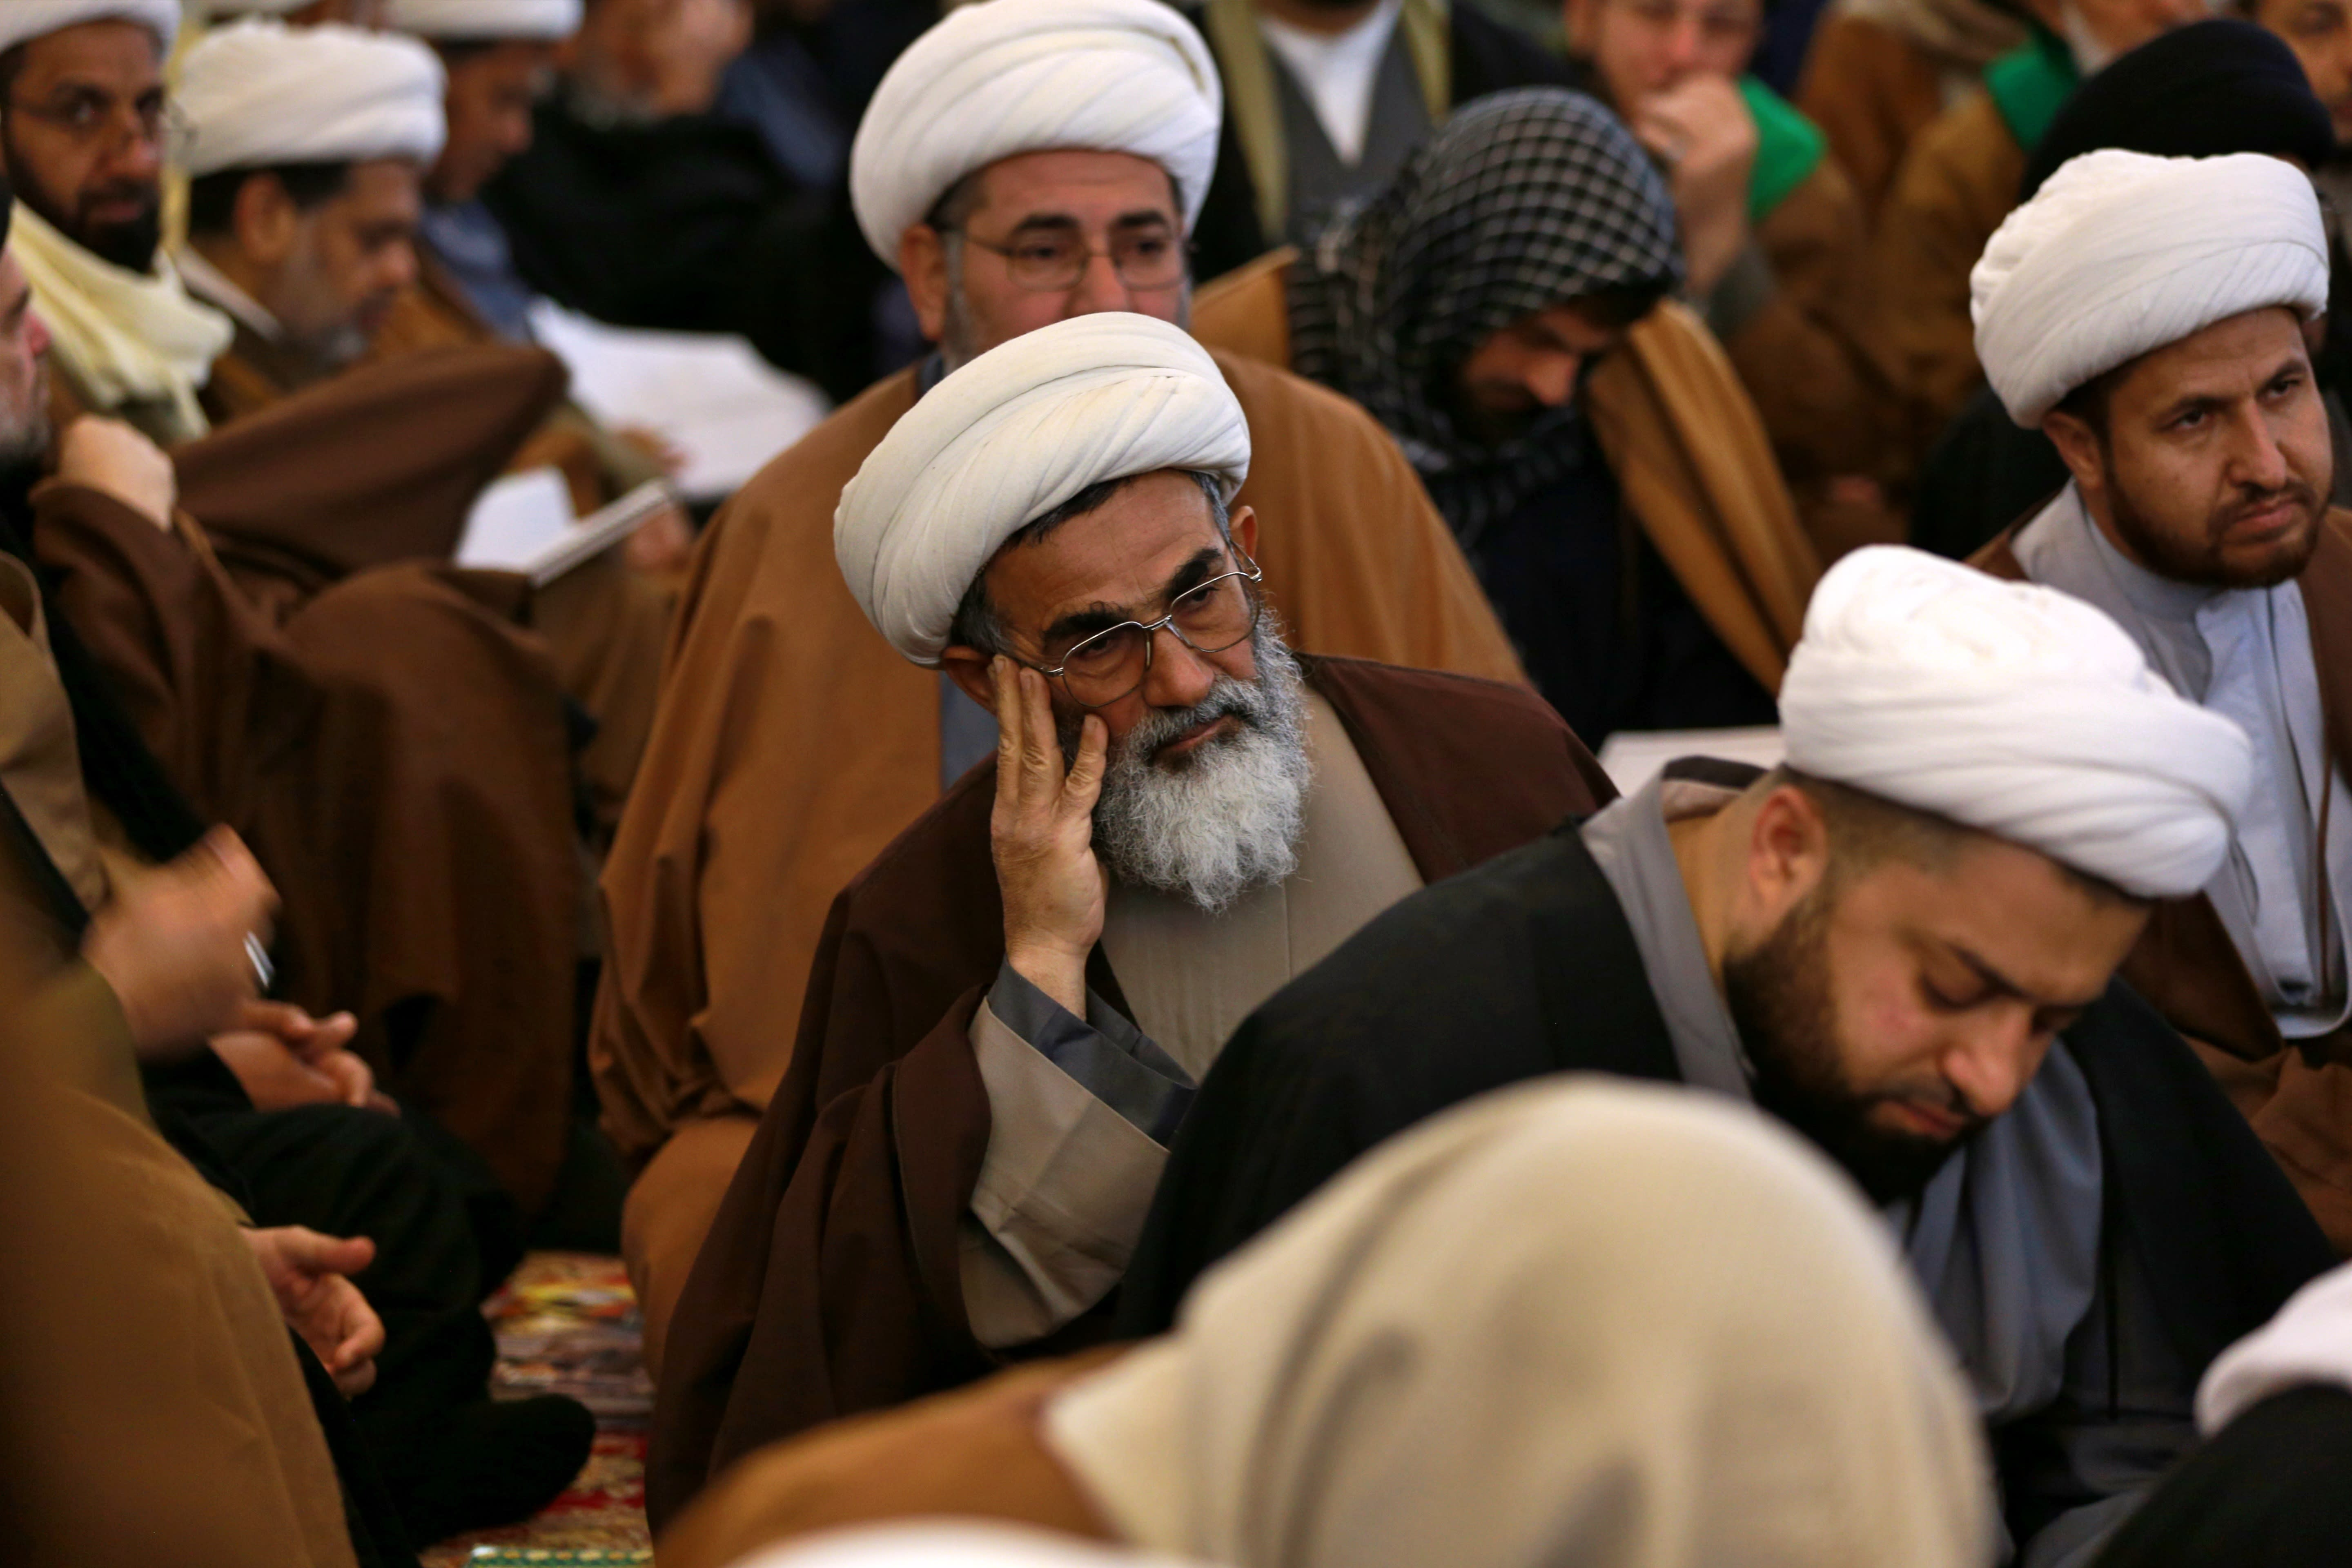 """In this Sunday, Feb. 2, 2020, Shiite seminary students attend a lecture at """"Hawza"""" seminary, in the holy shrine of Imam Ali, the son-in-law, and cousin of the Prophet Muhammad and the first Imam of the Shiites, in Najaf, Iraq. Grand Ayatollah Ali al-Sistani, Iraq's top Shiite cleric, turns 90 this year, and when he recently had surgery it sent chills around the country and beyond. What happens when al-Sistani is gone? Iran is likely to try to exploit the void to gain followers among Iraq's Shiites. Standing in its way is the Hawza, the centuries-old institution of religious learning which al-Sistani heads and which follows its own tradition-bound rules. (AP Photo/Hadi Mizban)"""